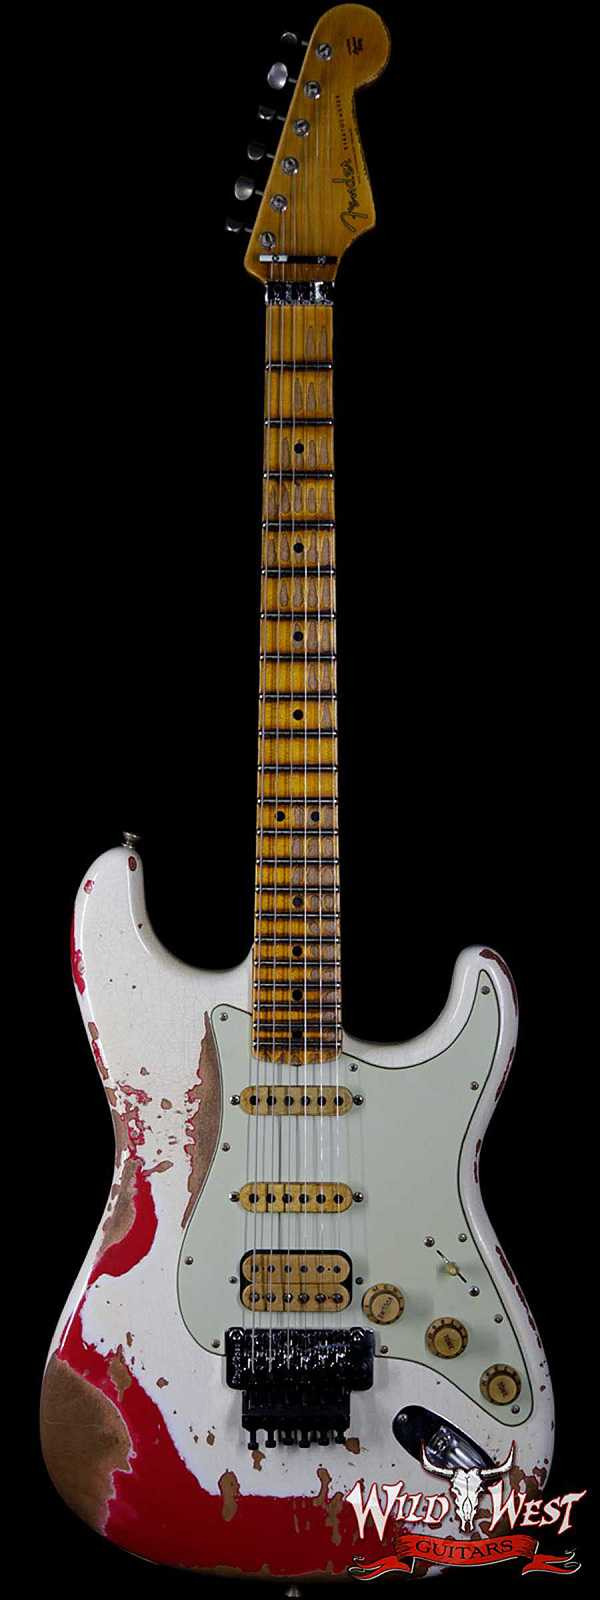 Fender Custom Shop Wild West Exclusive White Lightning Floyd Rose HSS Stratocaster Heavy Relic Maple Neck 21 Frets Torino Red